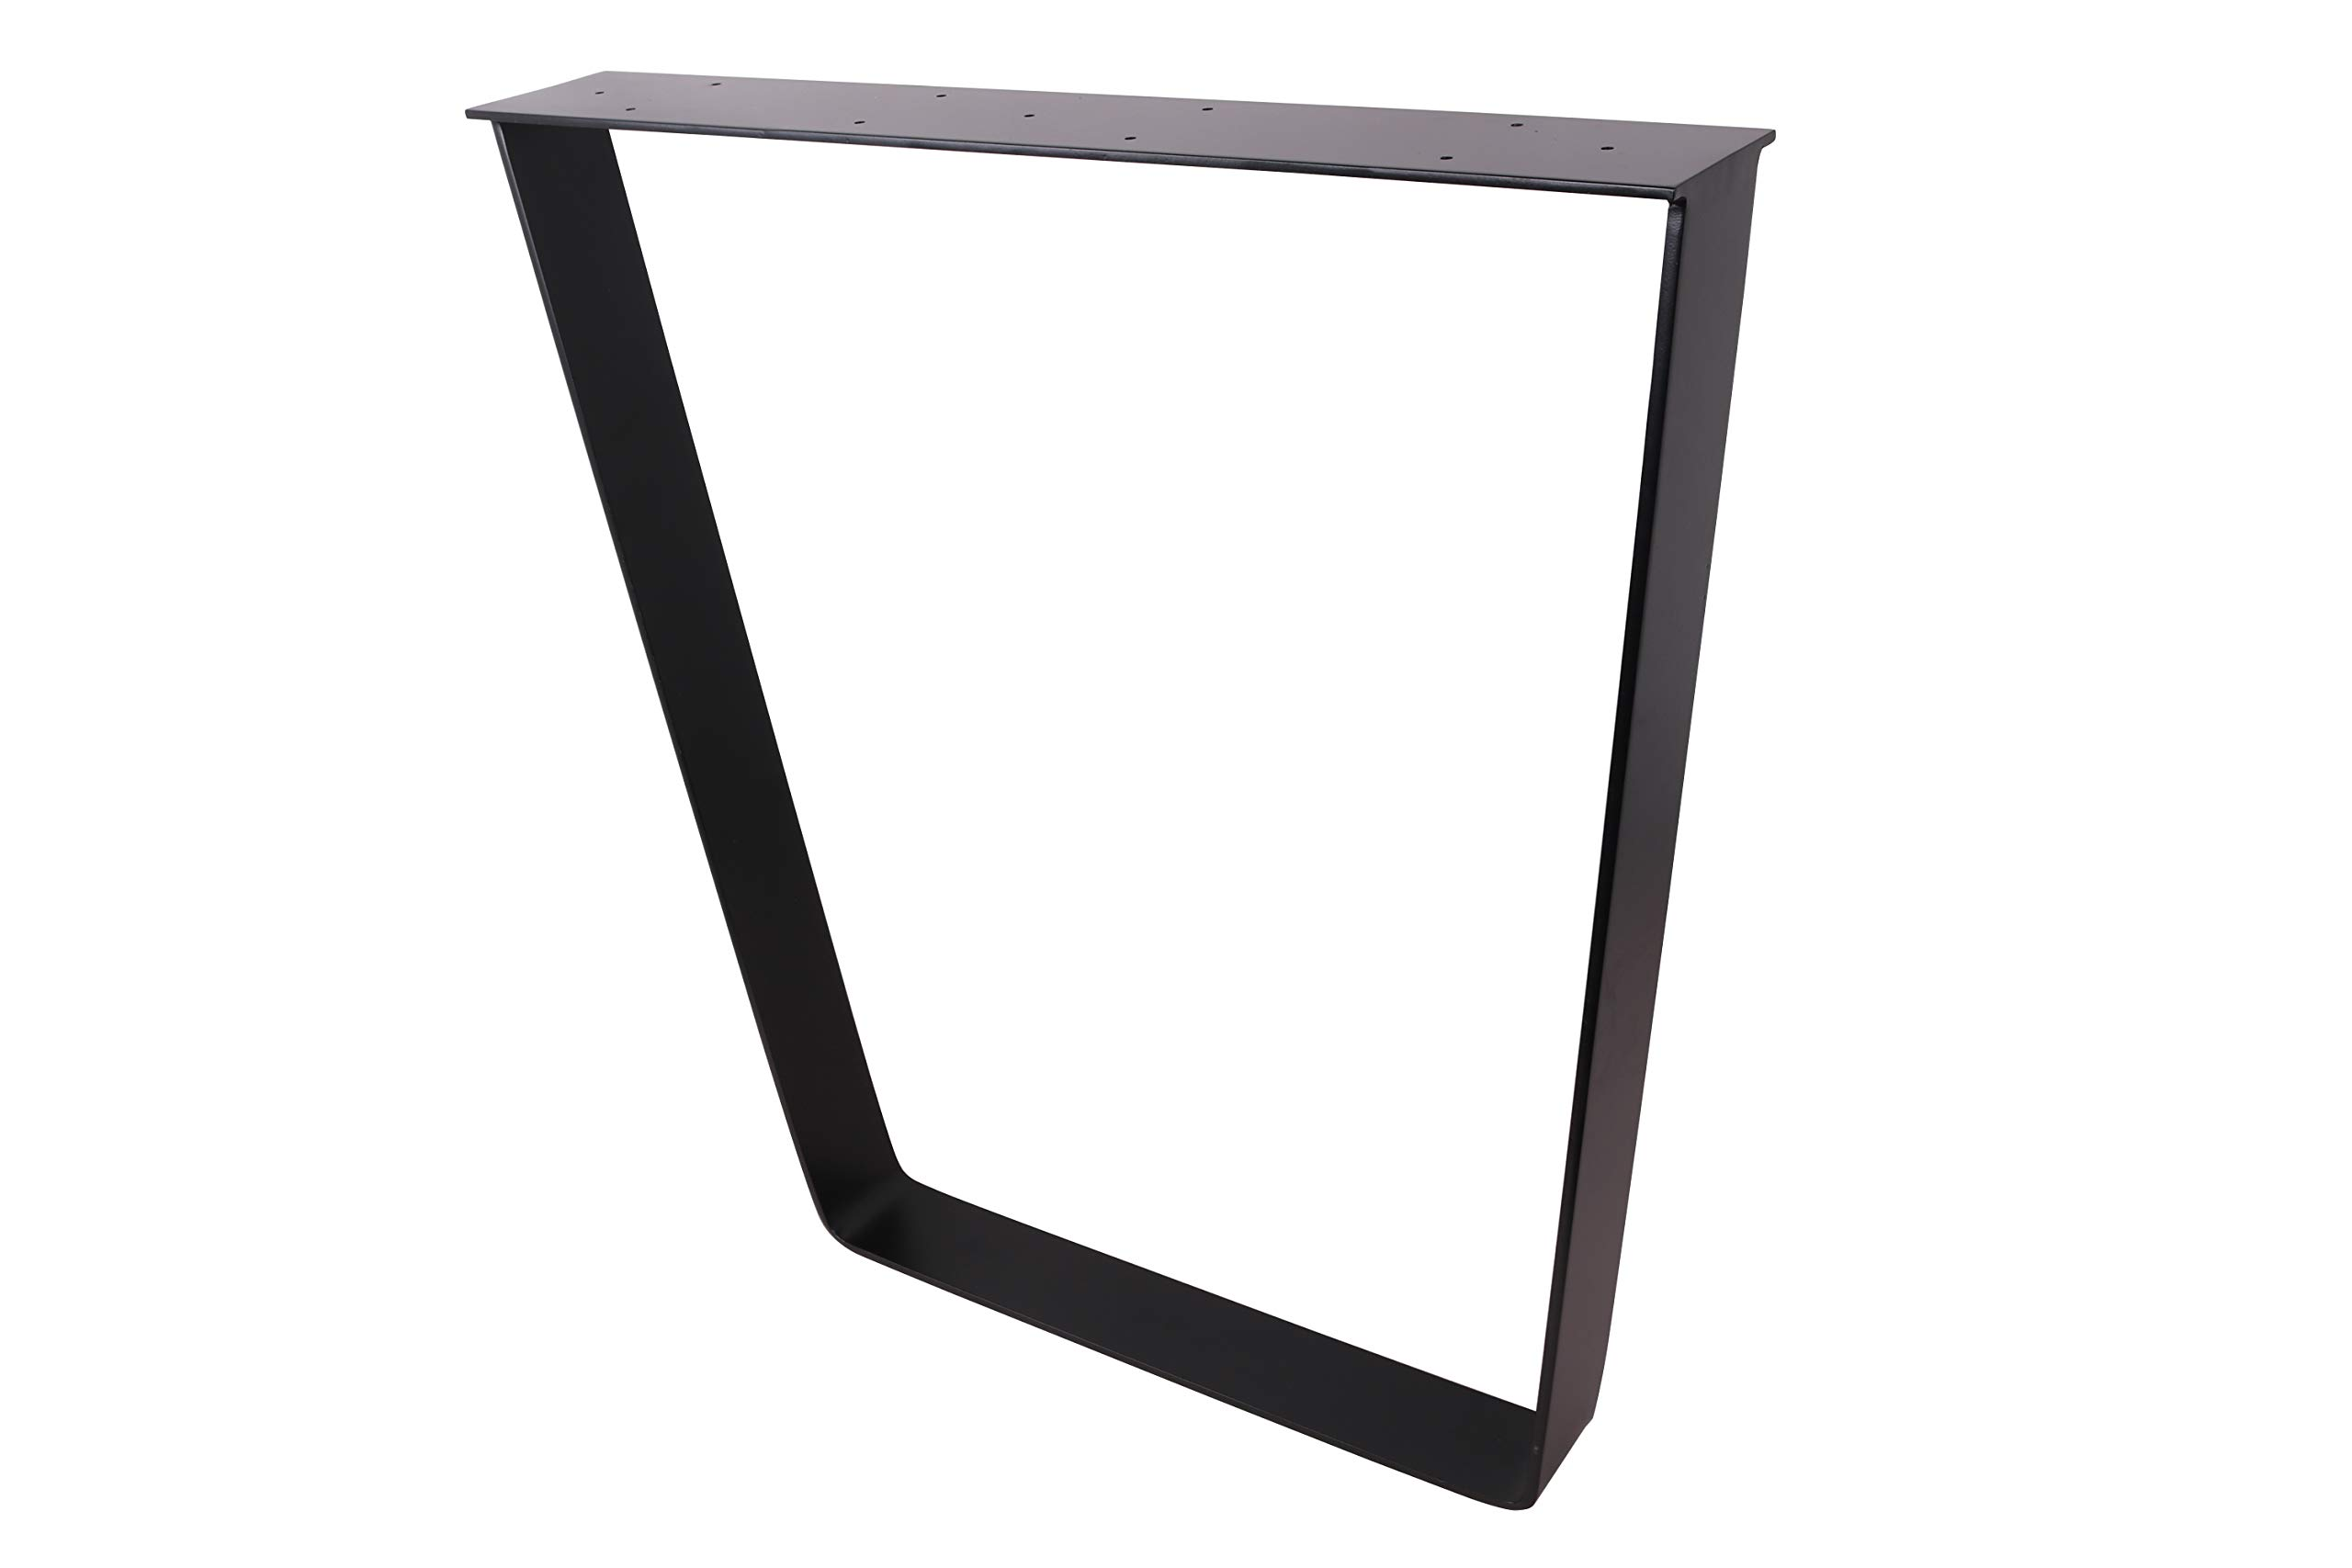 2 x 28'' Trapezoid Shaped Dining Table Legs, Heavy Duty Inverted trapezoidal Steel table legs, Office Table Legs,Computer Desk Legs,Industrial kitchen table legs,Country Style Table Legs,Set of 2,Black by ECLV (Image #3)